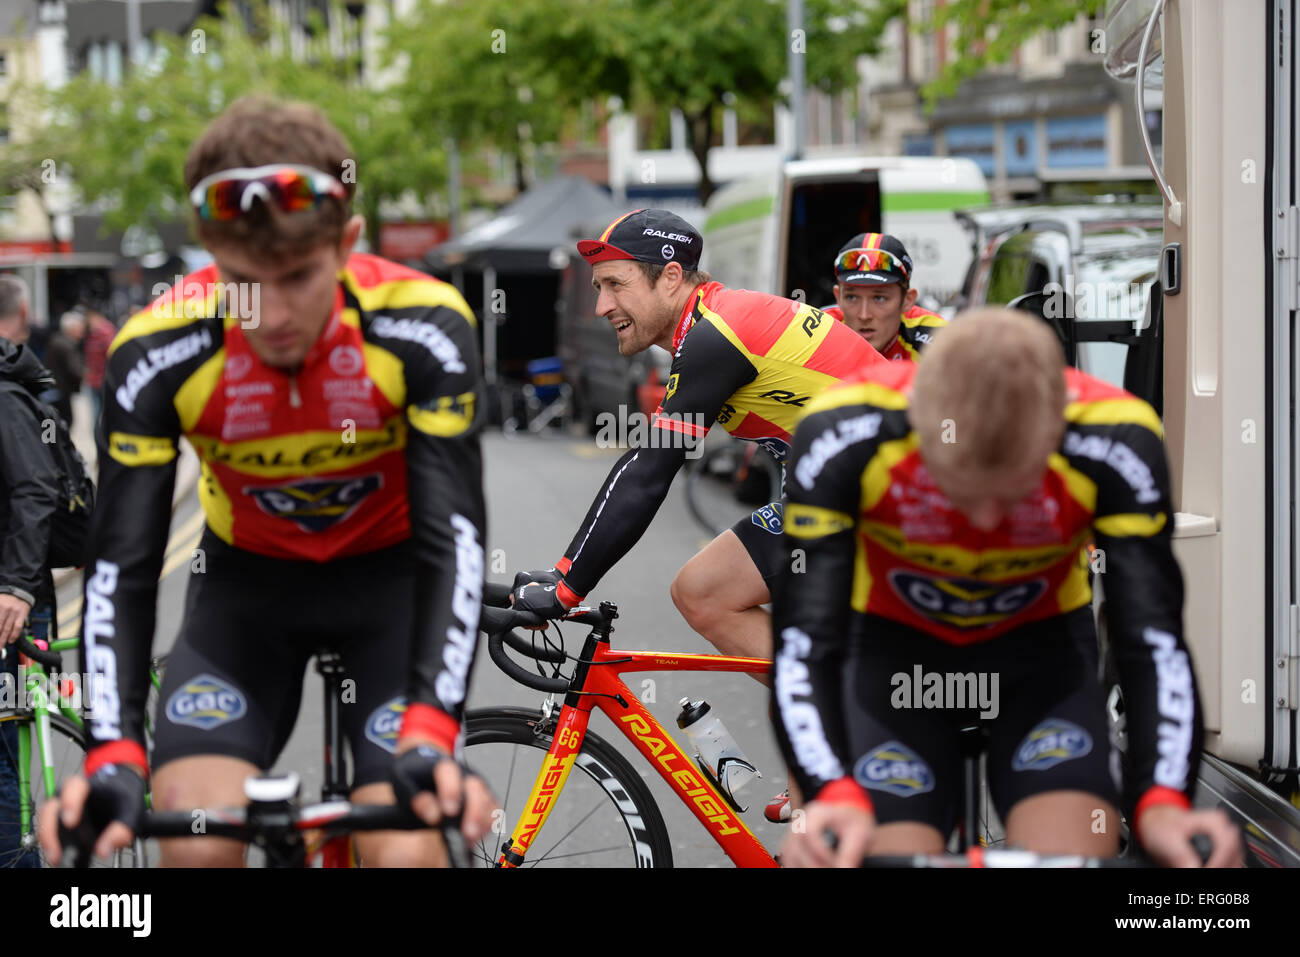 Riders from the Raleigh GAC team warm up before the Milk Race at Nottingham, United Kingdom on 24 May 2015. - Stock Image